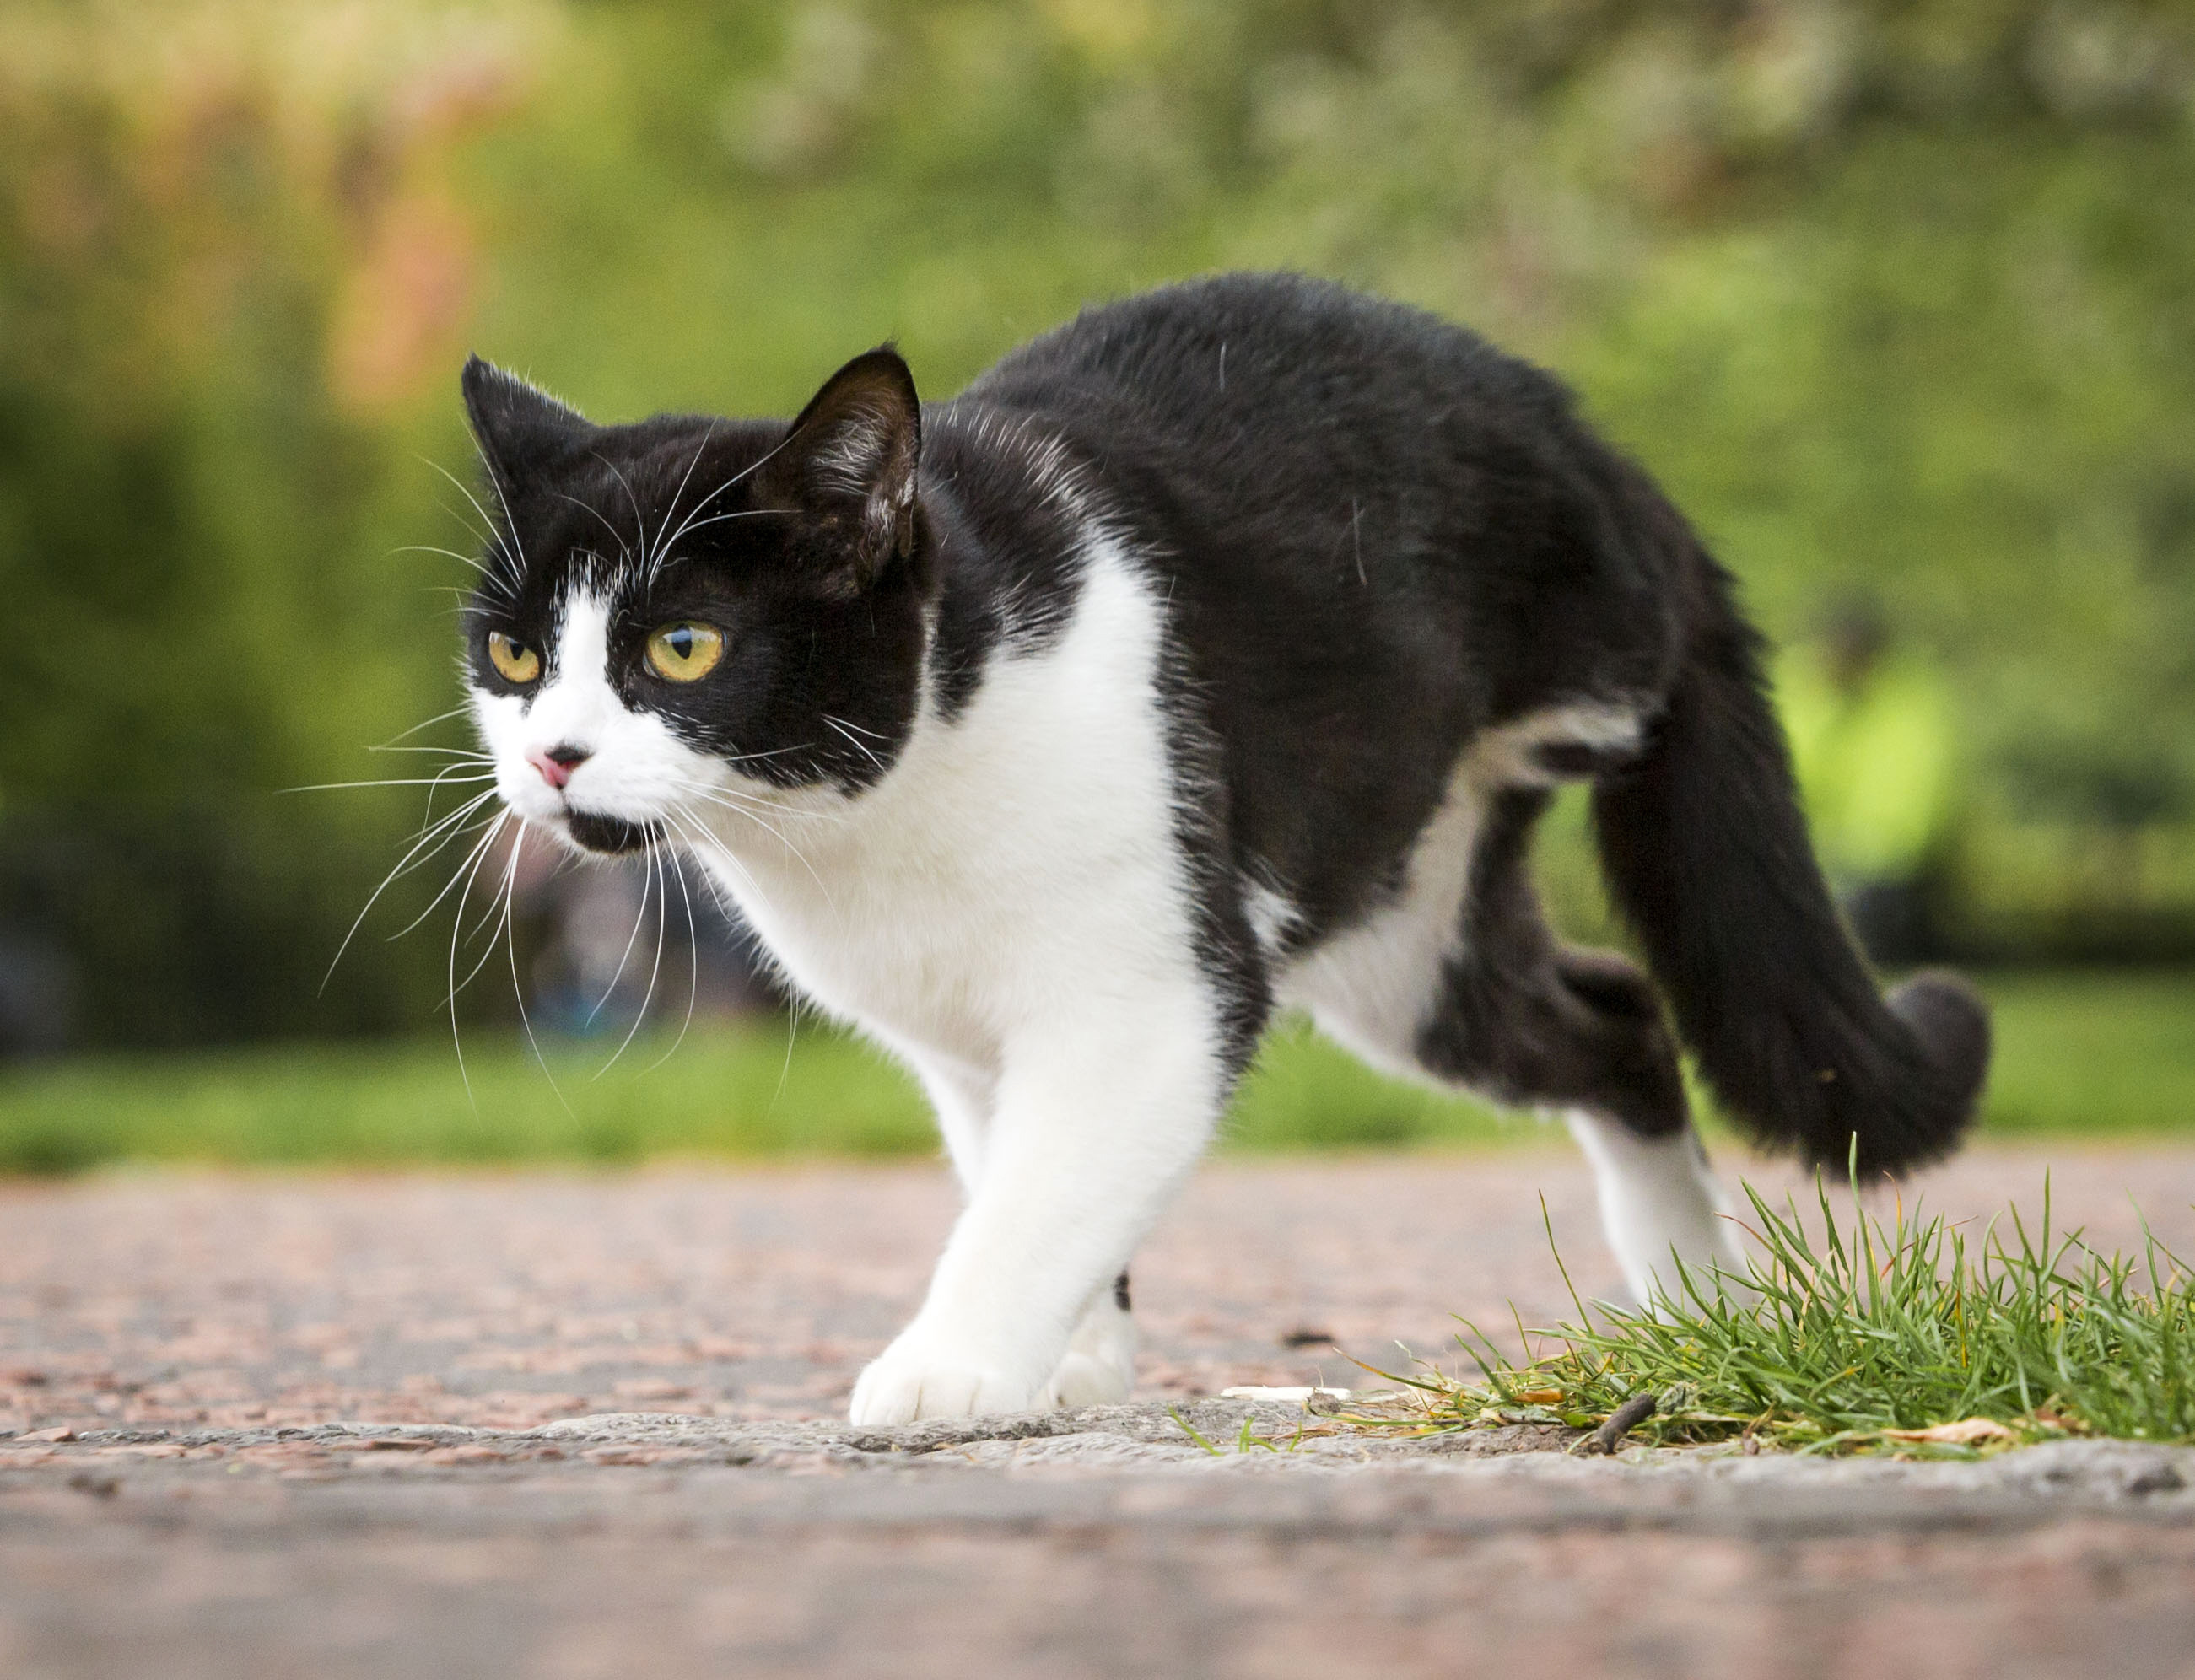 Fizz the cat is one example of an animal suffering cruelty, losing a limb after being shot  with an airgun.